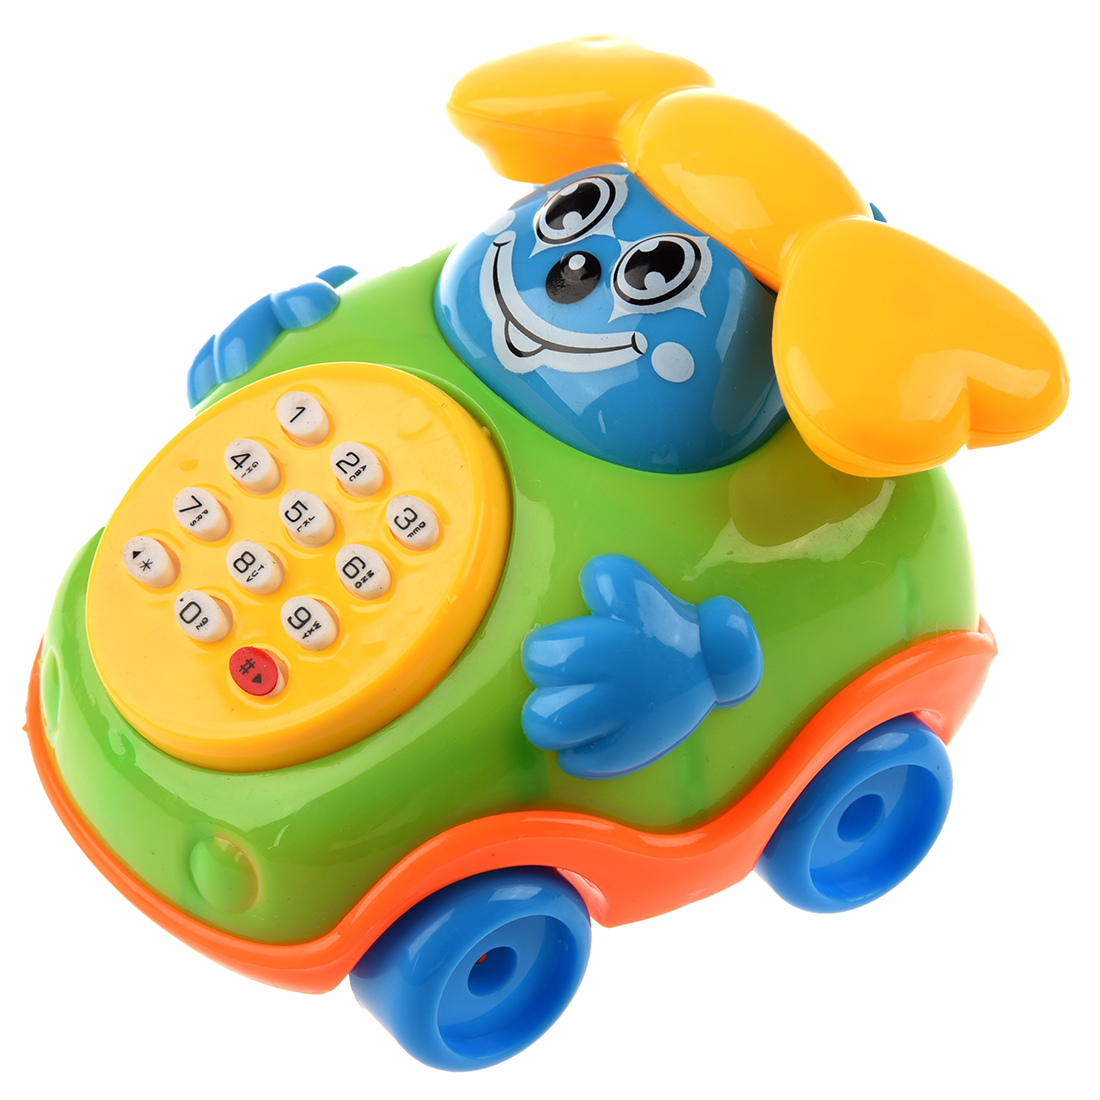 Baby Toy Car : Child puzzle cartoon music phone toy car belt baby toys